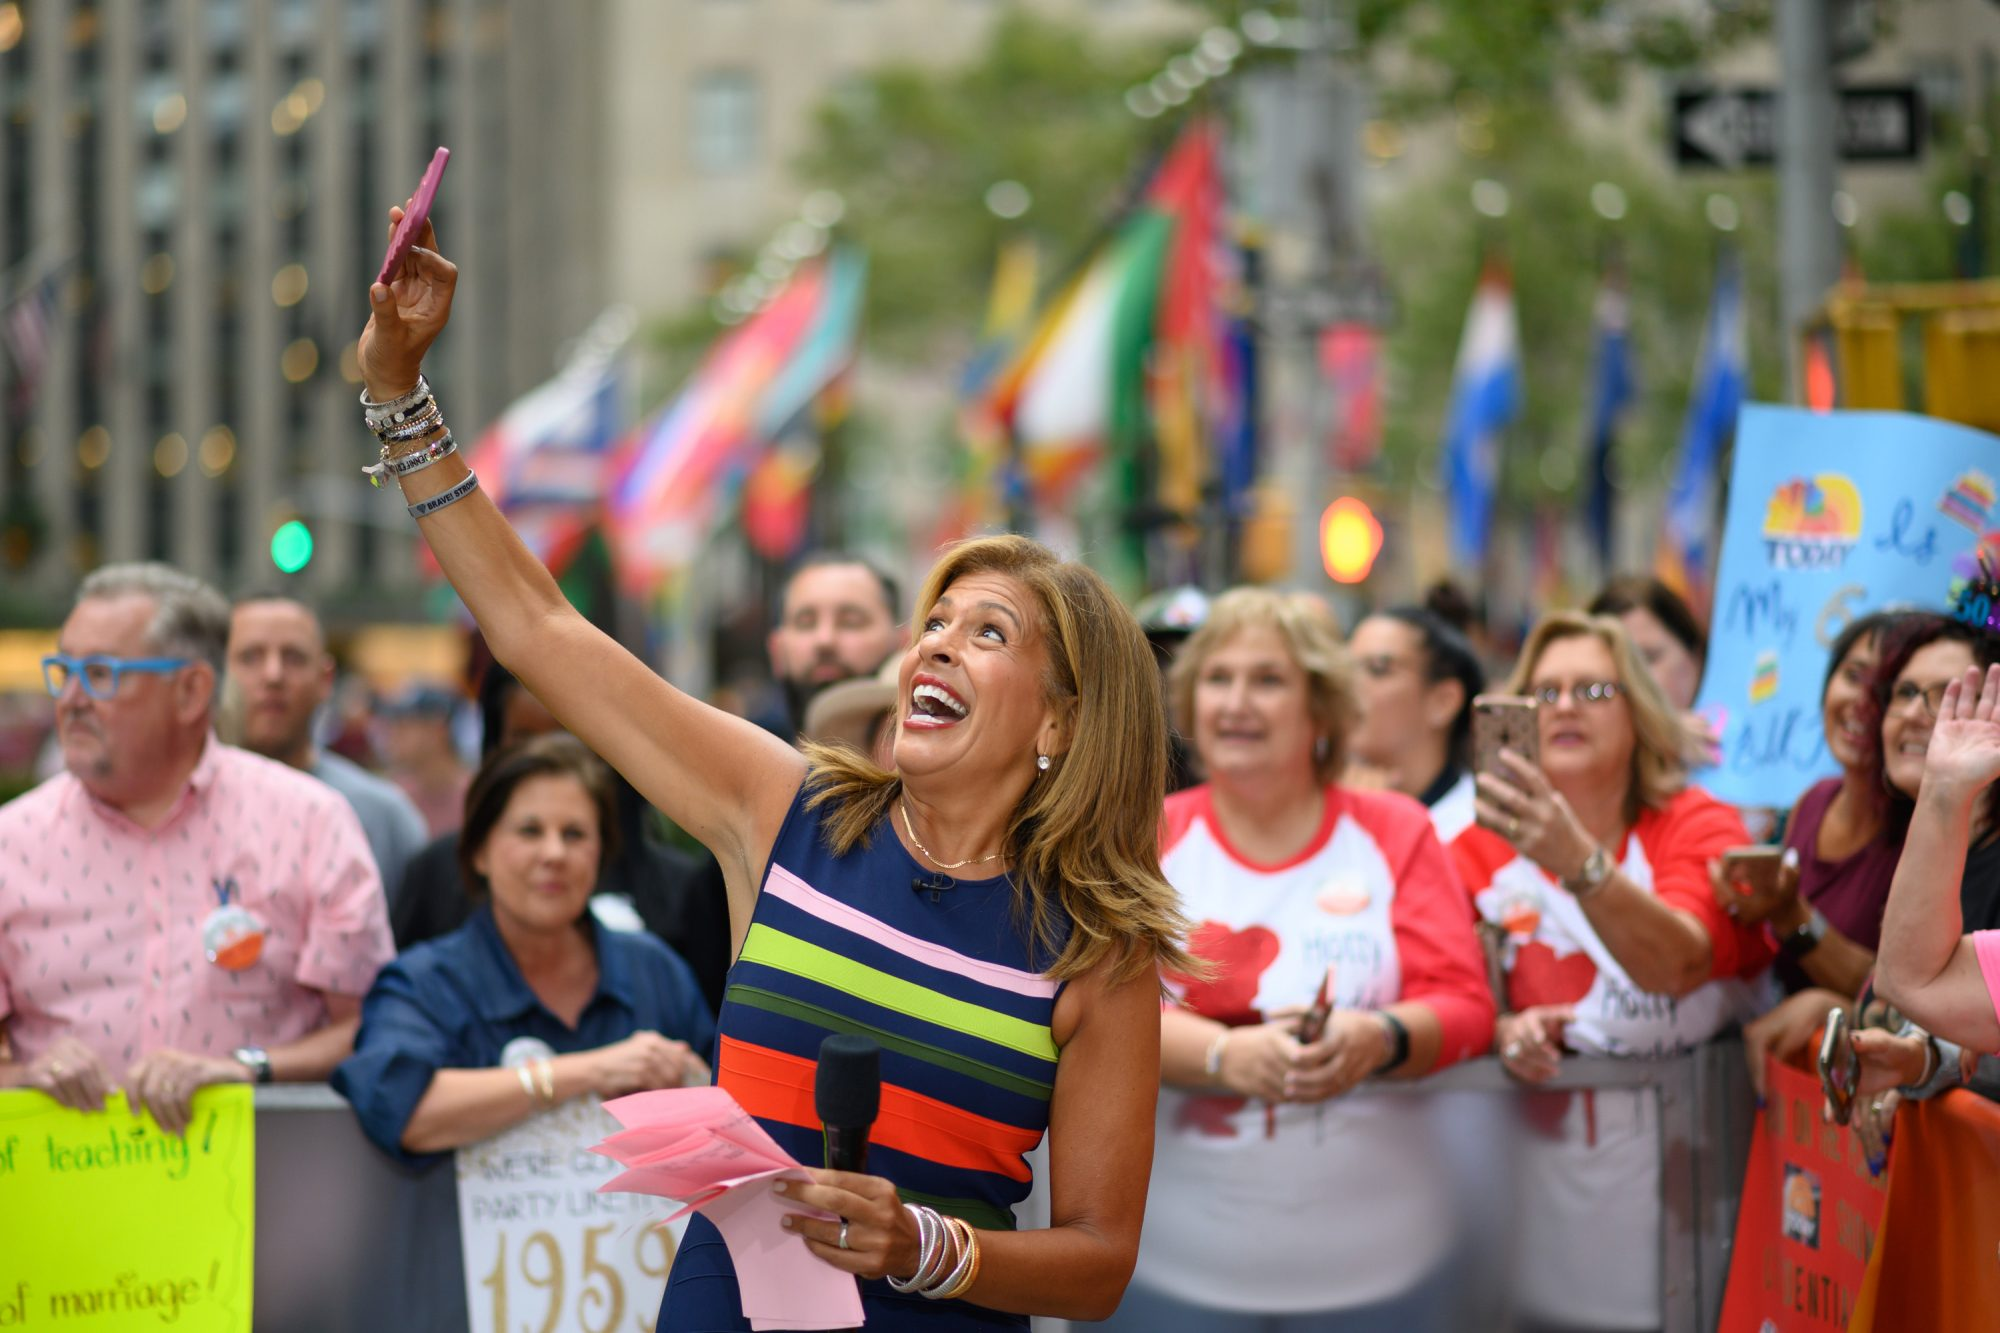 WATCH: Hoda Kotb Admits She Almost Thought About Leaving the Today Show—Here's Why